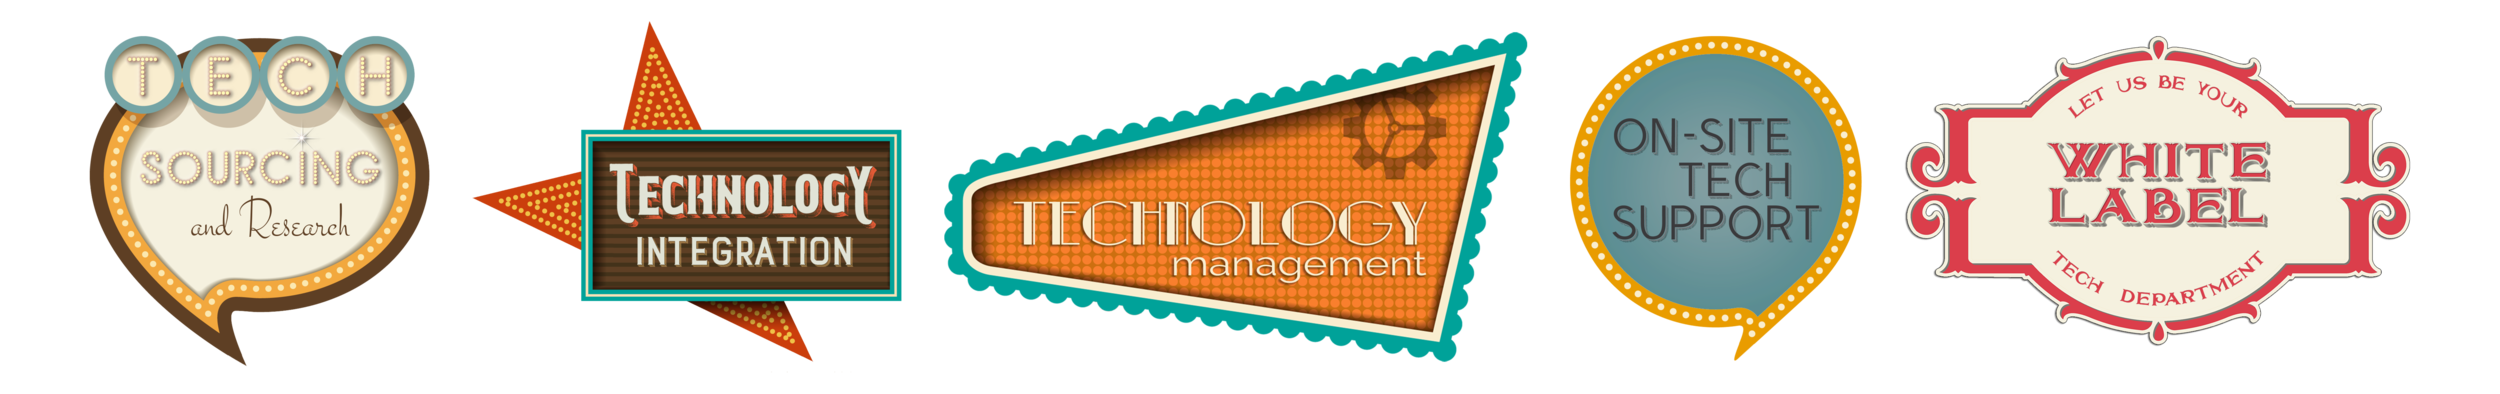 Power Event Group Technology Services - Technology Sourcing - Technology Research - Technology Integration - Technology Management - On-Site Technology Support - White Label Technology Services